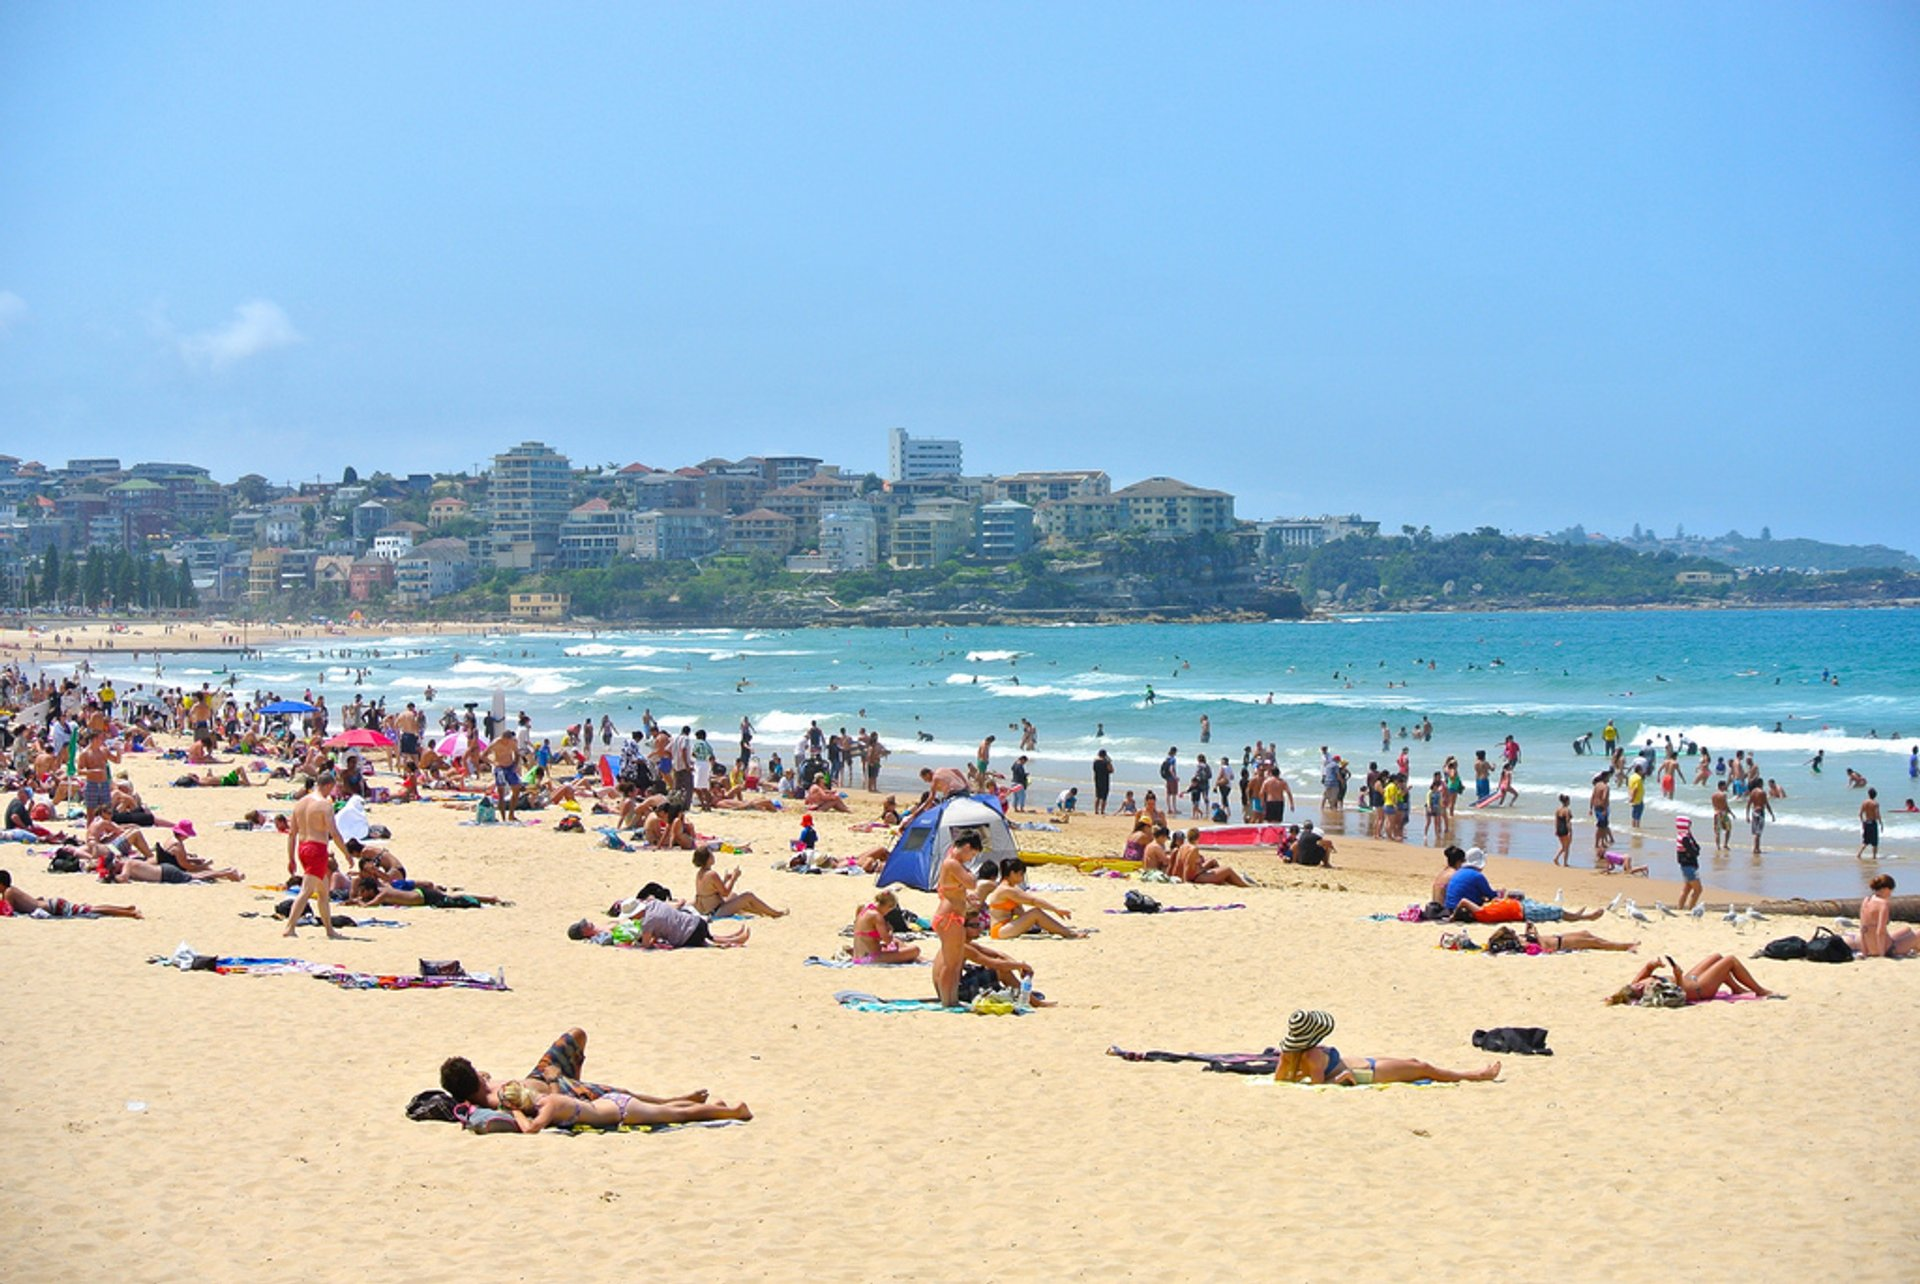 Manly Beach gets rather crowded in the summer months 2019